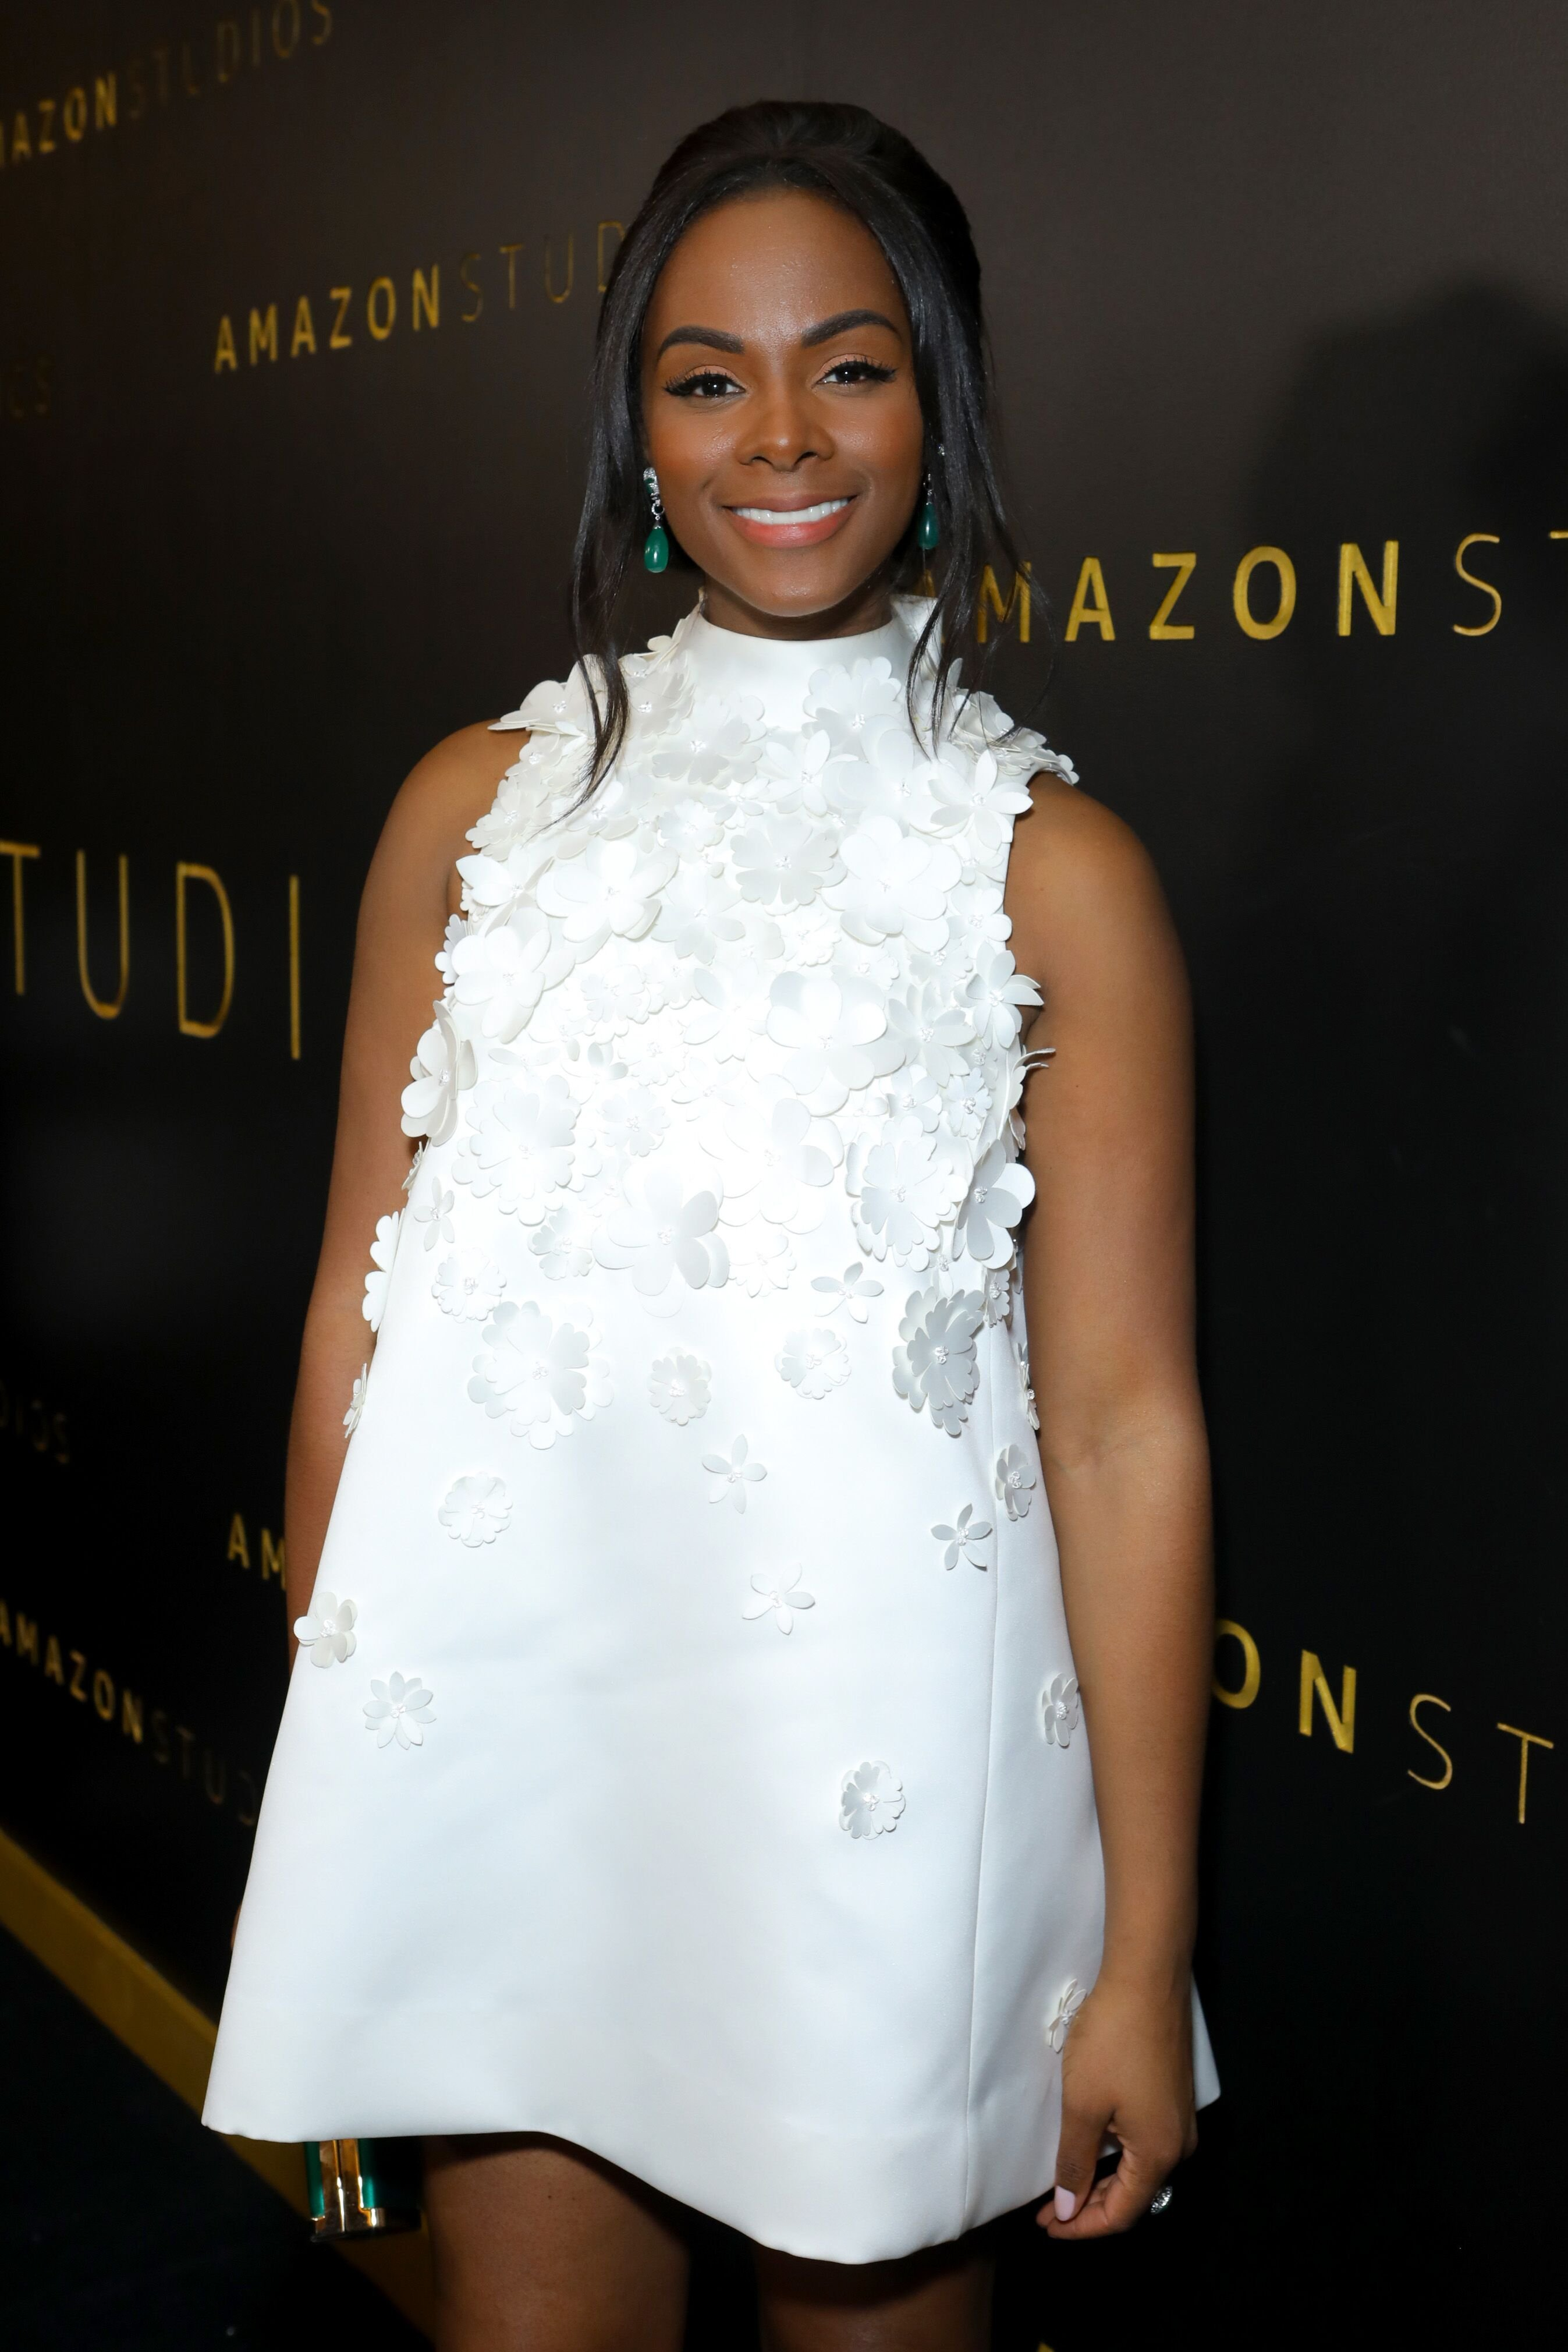 Tika Sumpter attends the Amazon Studios Golden Globes After Party at The Beverly Hilton Hotel on January 05 | Photo: Getty Images